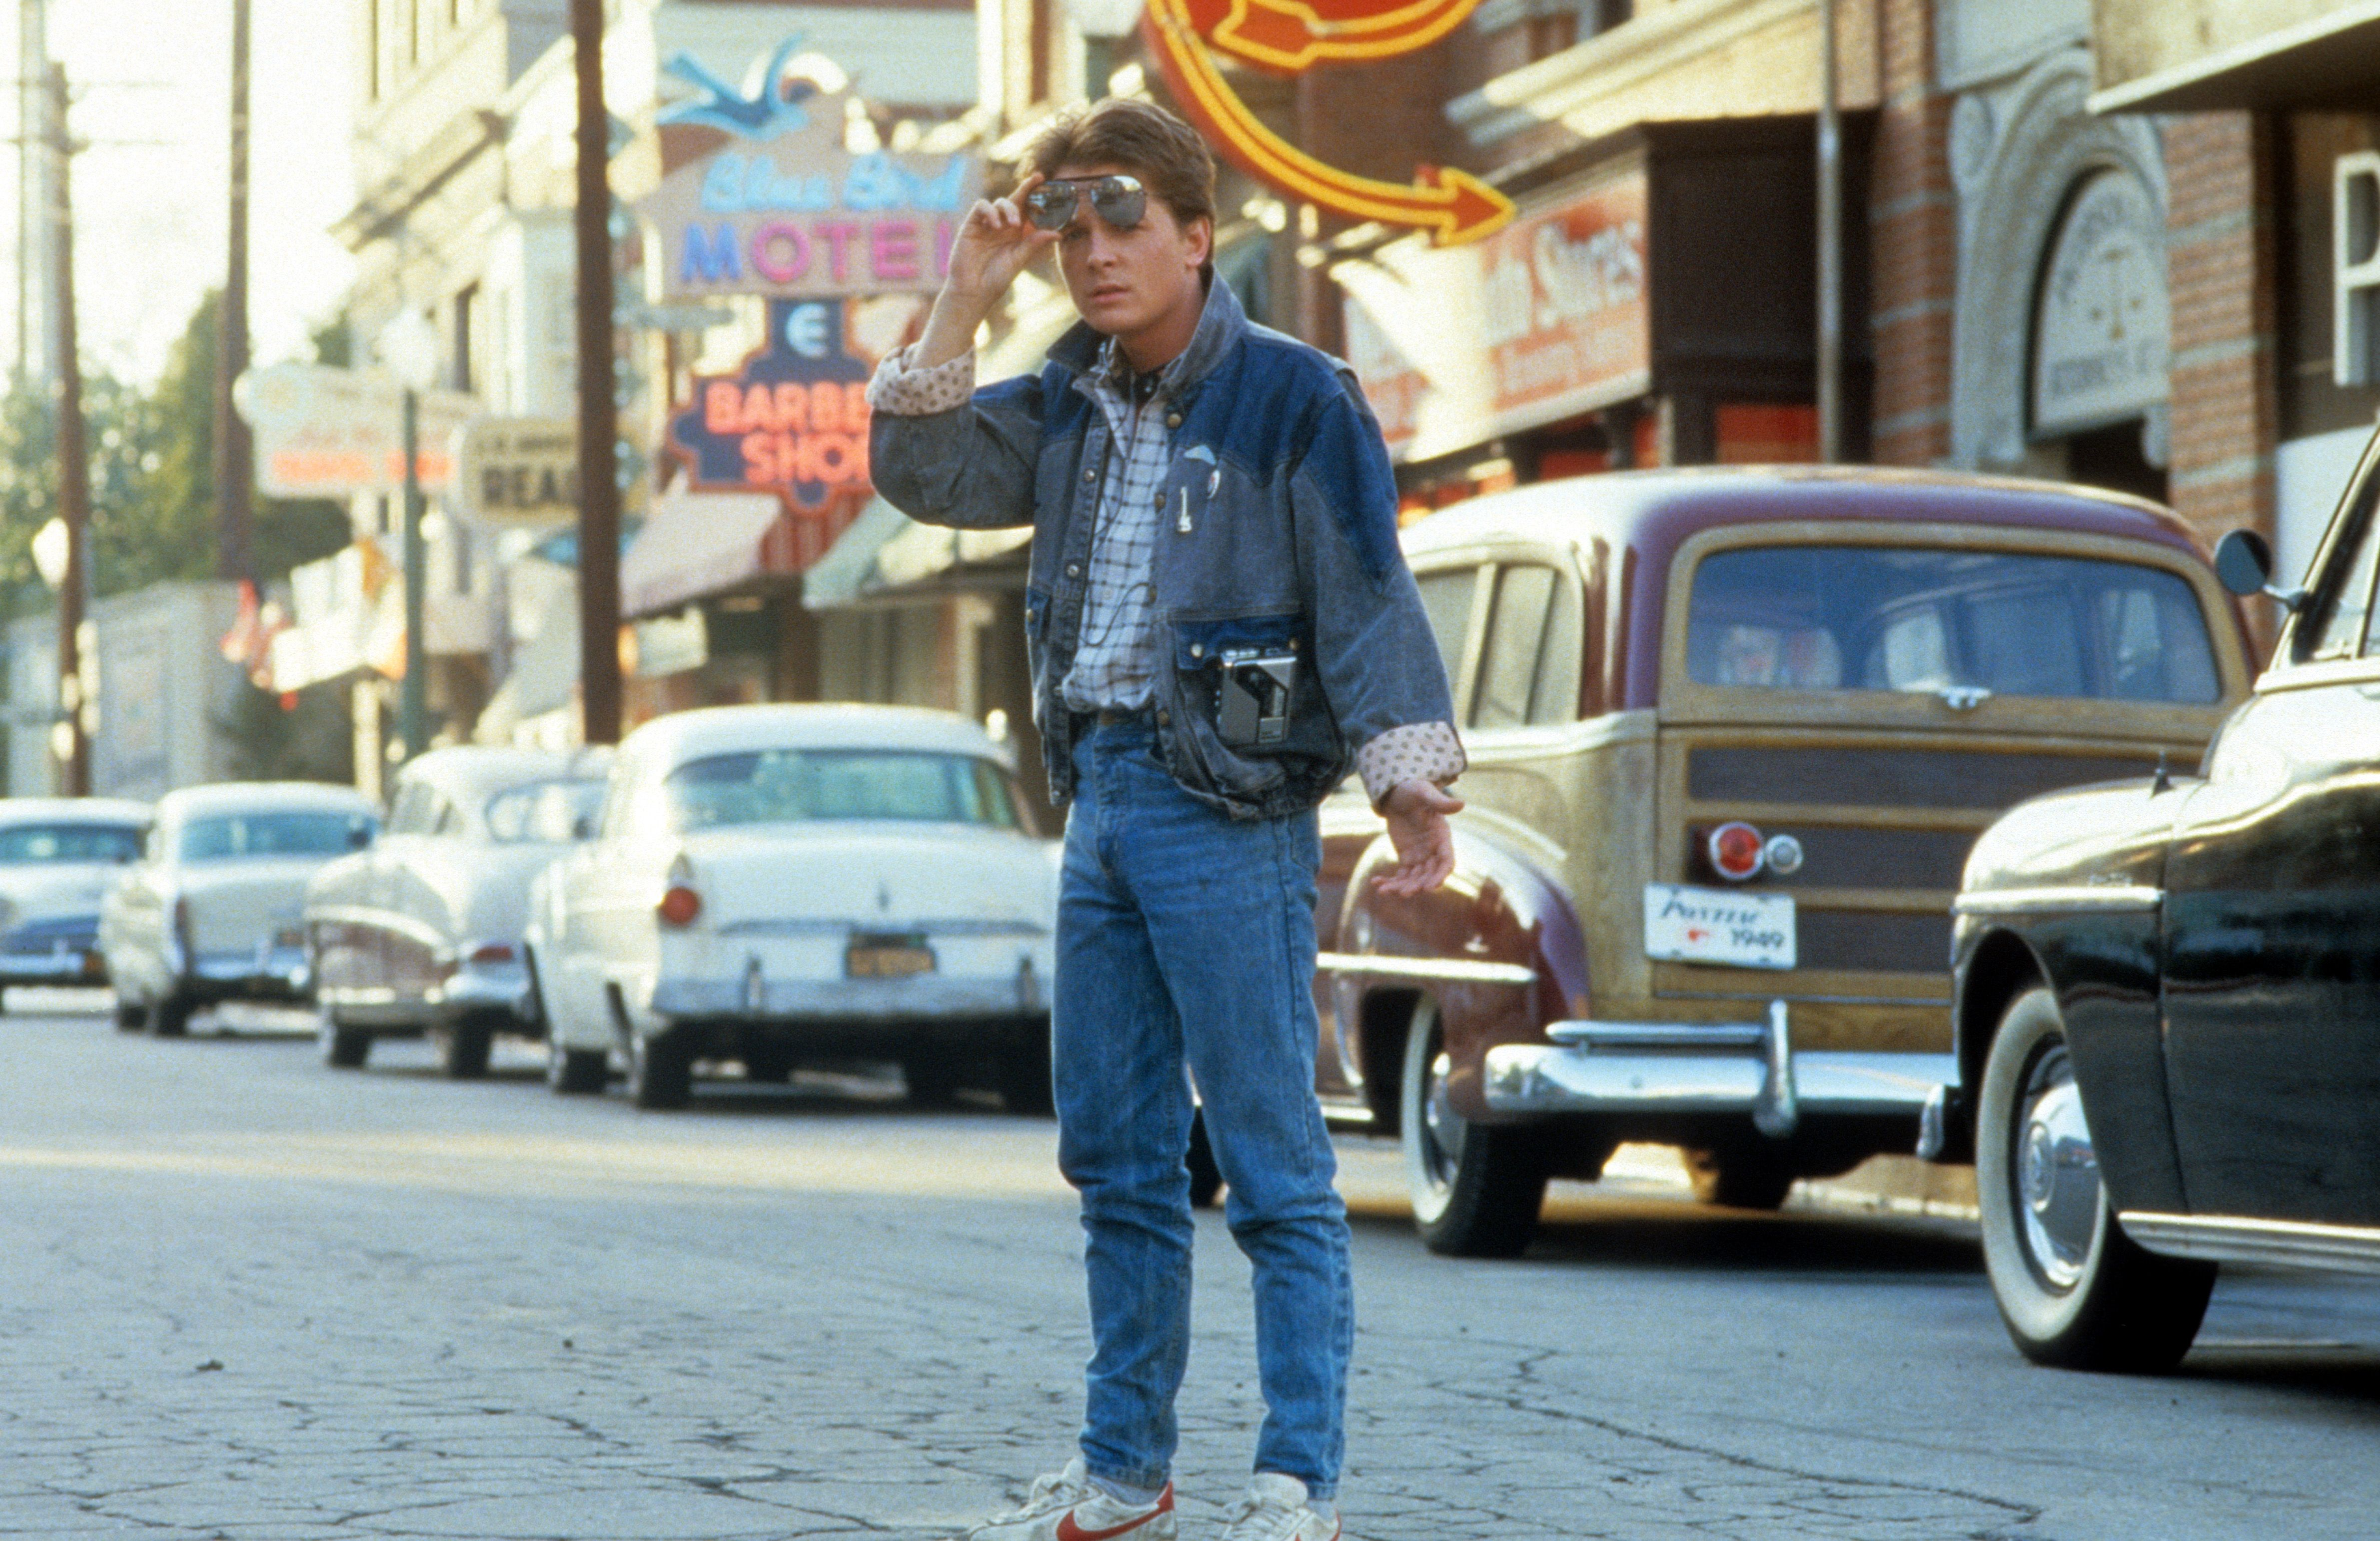 Back To The Future Plot Hole Explained Why Don T Marty S Parents